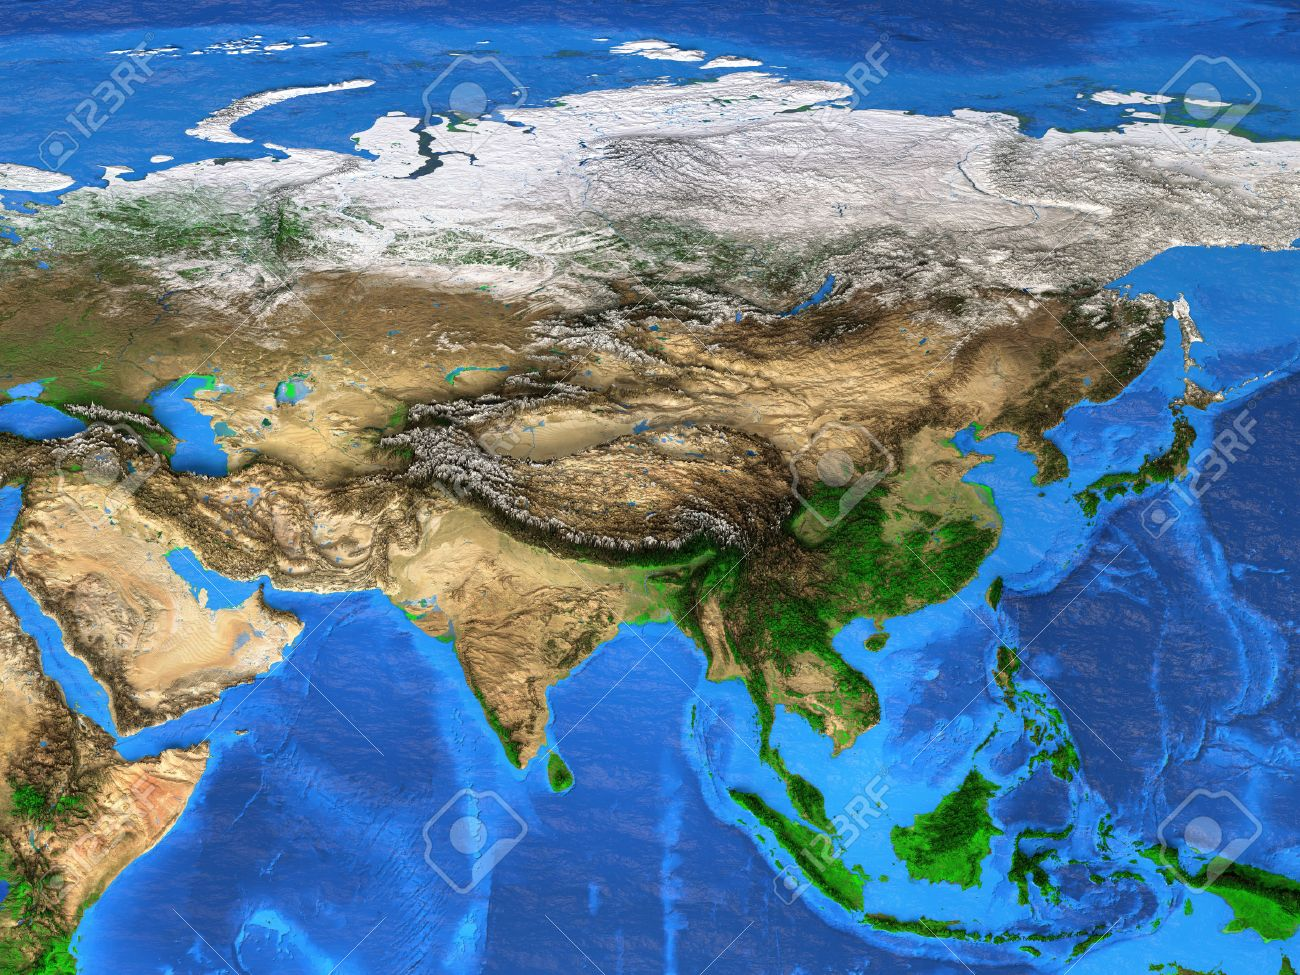 Map Of Asia Landforms.Detailed Satellite View Of The Earth And Its Landforms Asia Stock